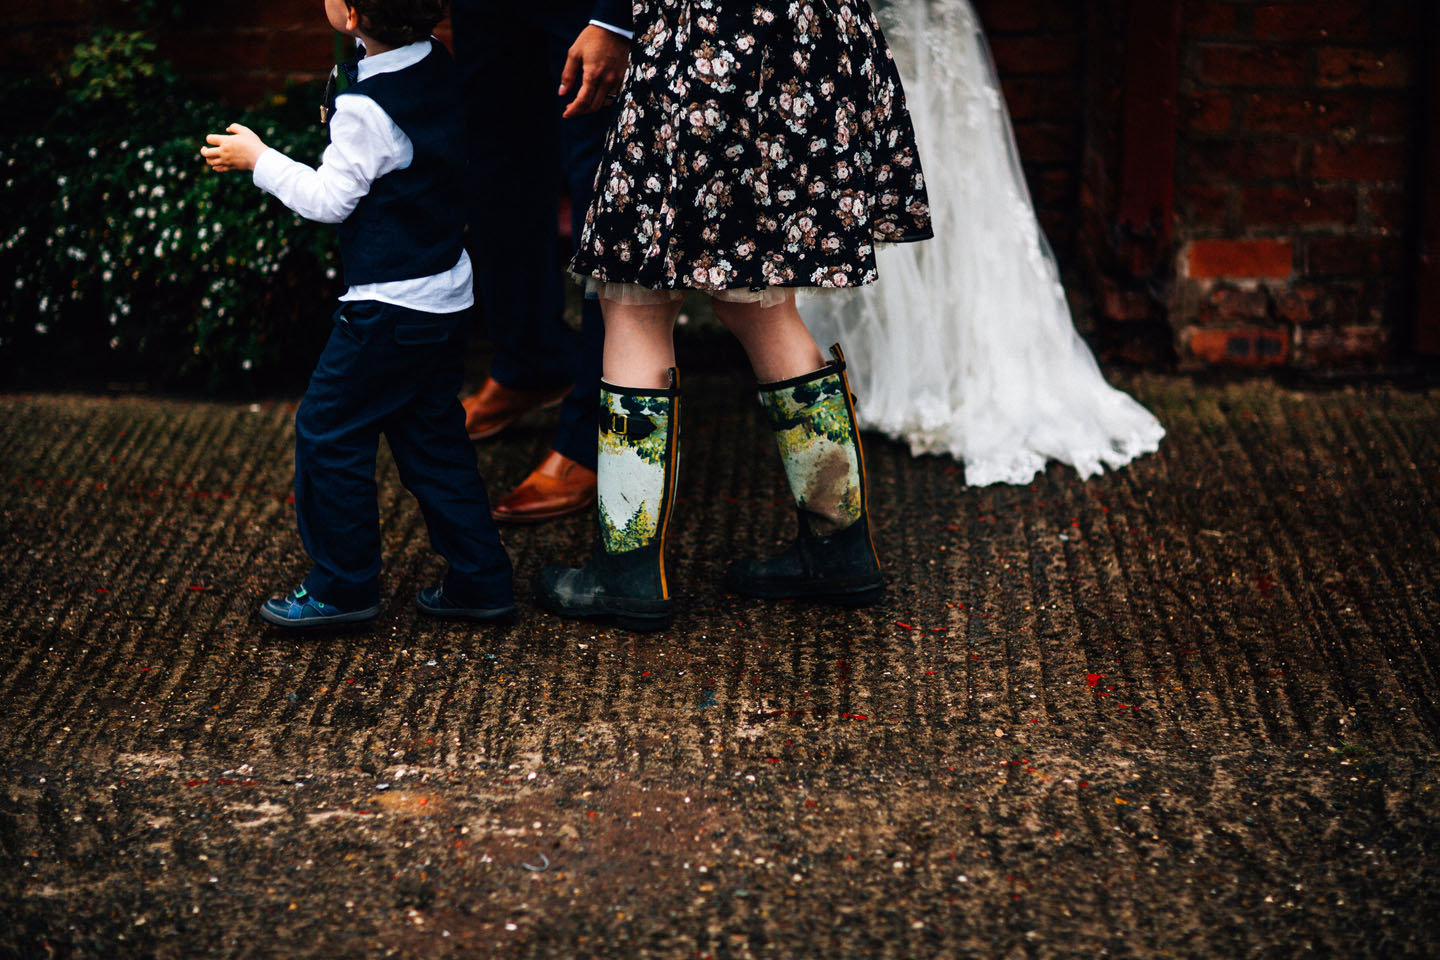 Autumn Wedding Ideas - Wellies and Brollies - Luxury Wedding Stationery by the Foil Invite Company